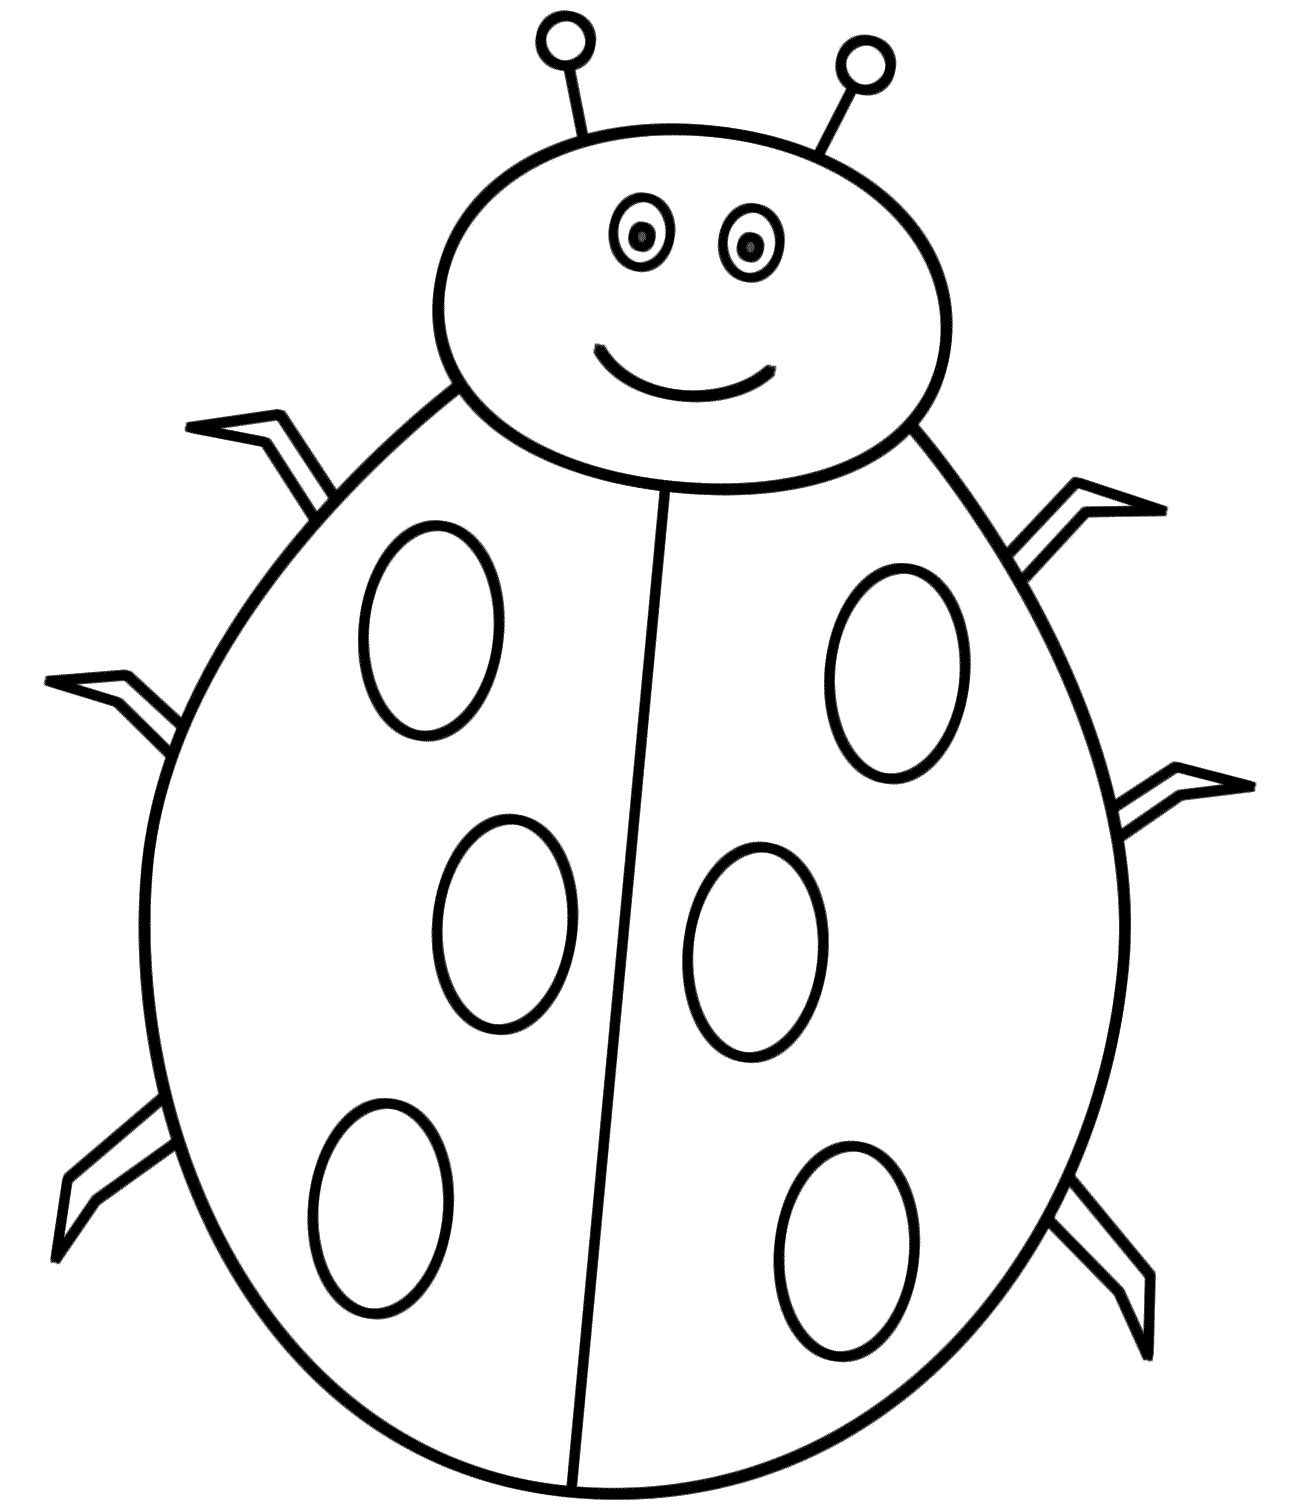 ladybugs coloring pages ladybug coloring pages free printables ladybug tattoo pages ladybugs coloring